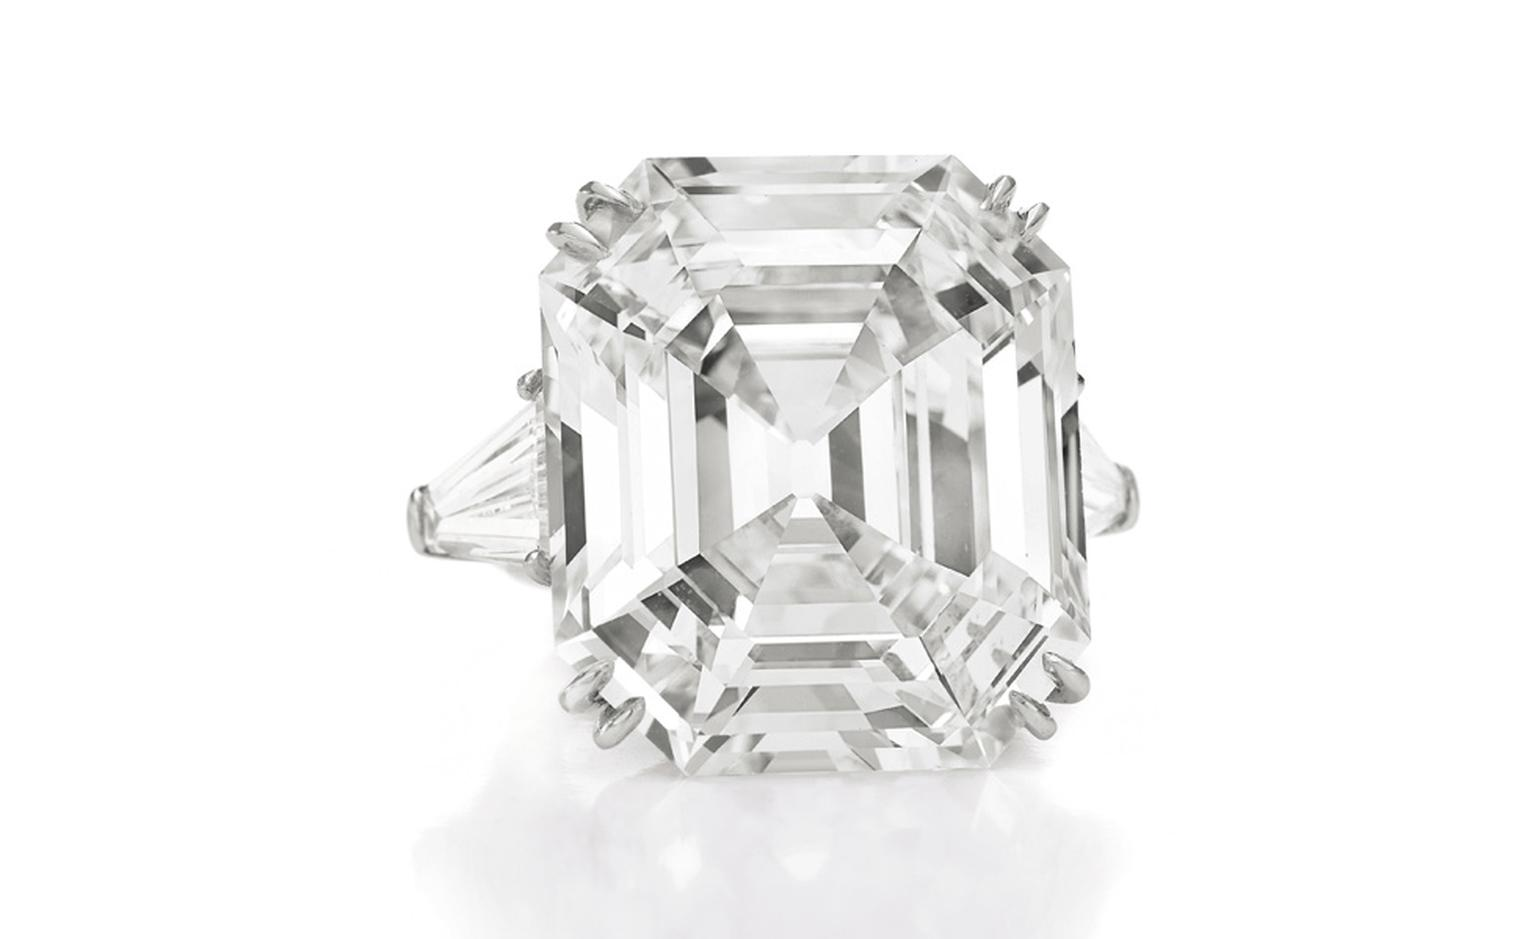 The Elizabeth Taylor Diamond, of 33.19 carats D Color, Potentially Internally Flawless Gift from Richard Burton, May 16, 1968 Estimate: $2,500,000-3,500,000